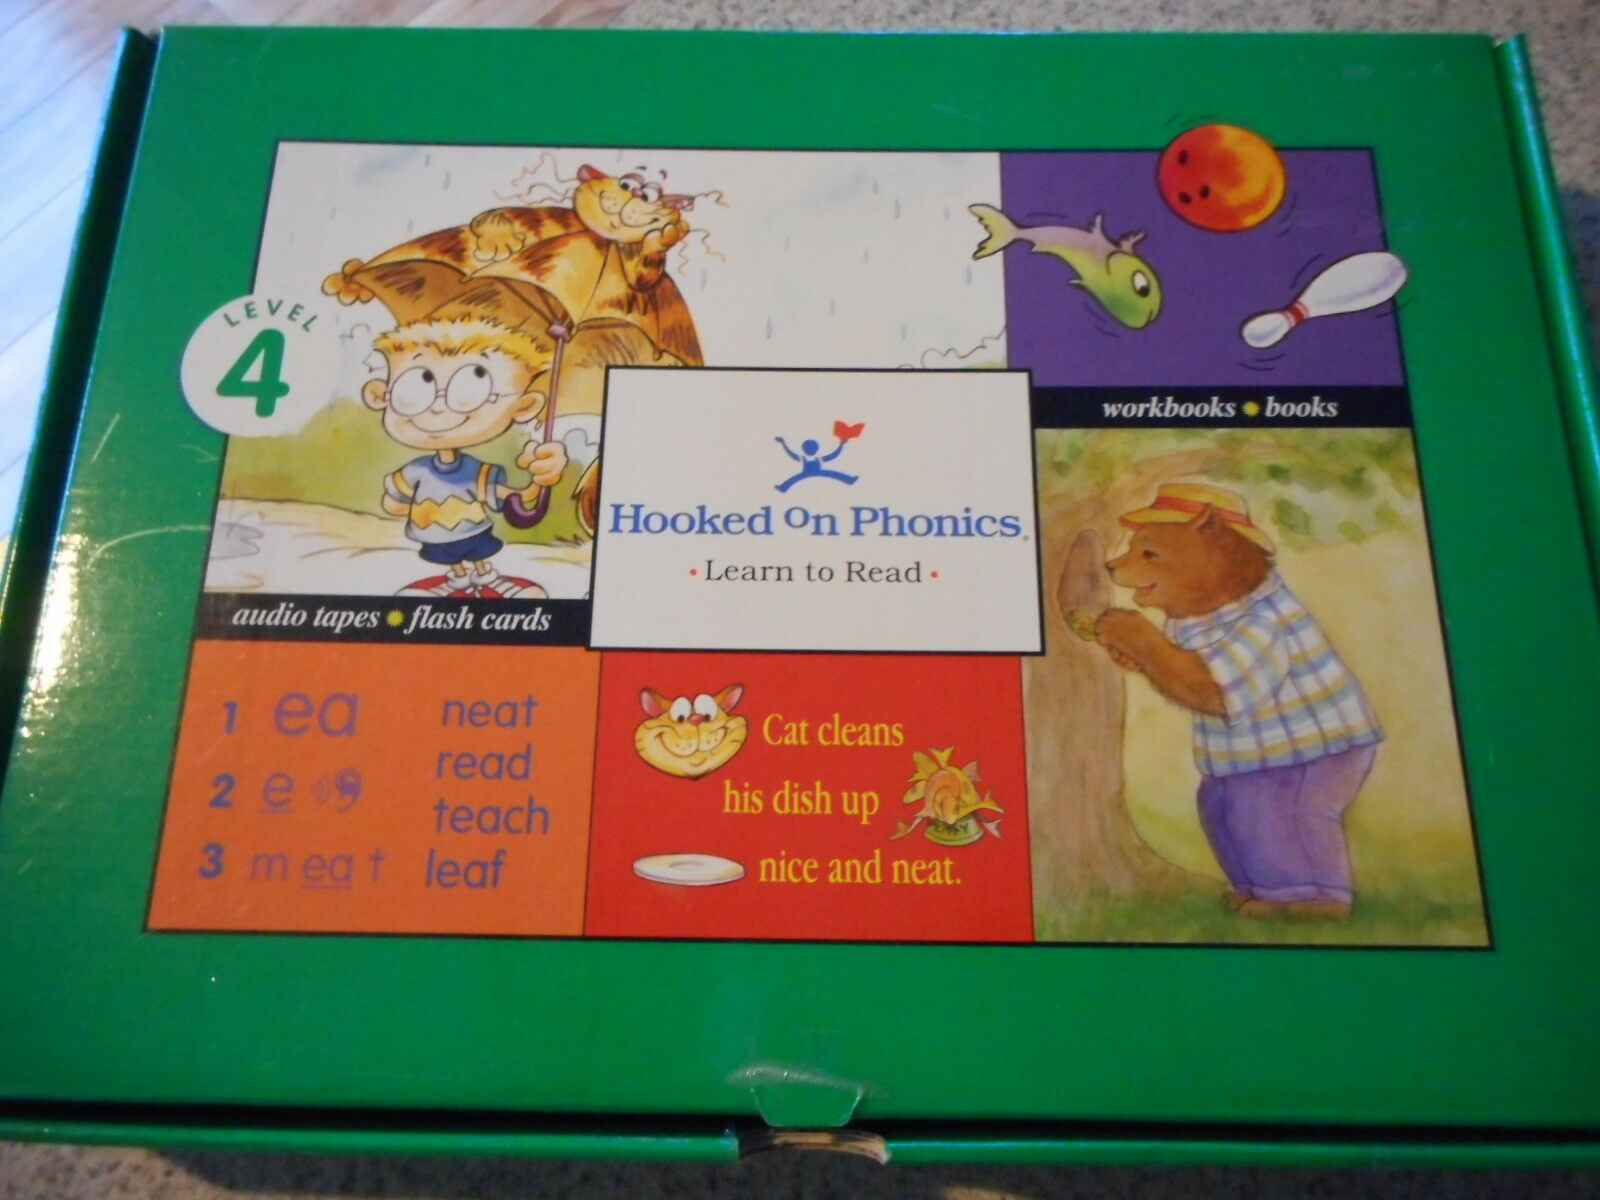 UPC 713794124004 - Hooked on Phonics (HOP) - Learn to Read